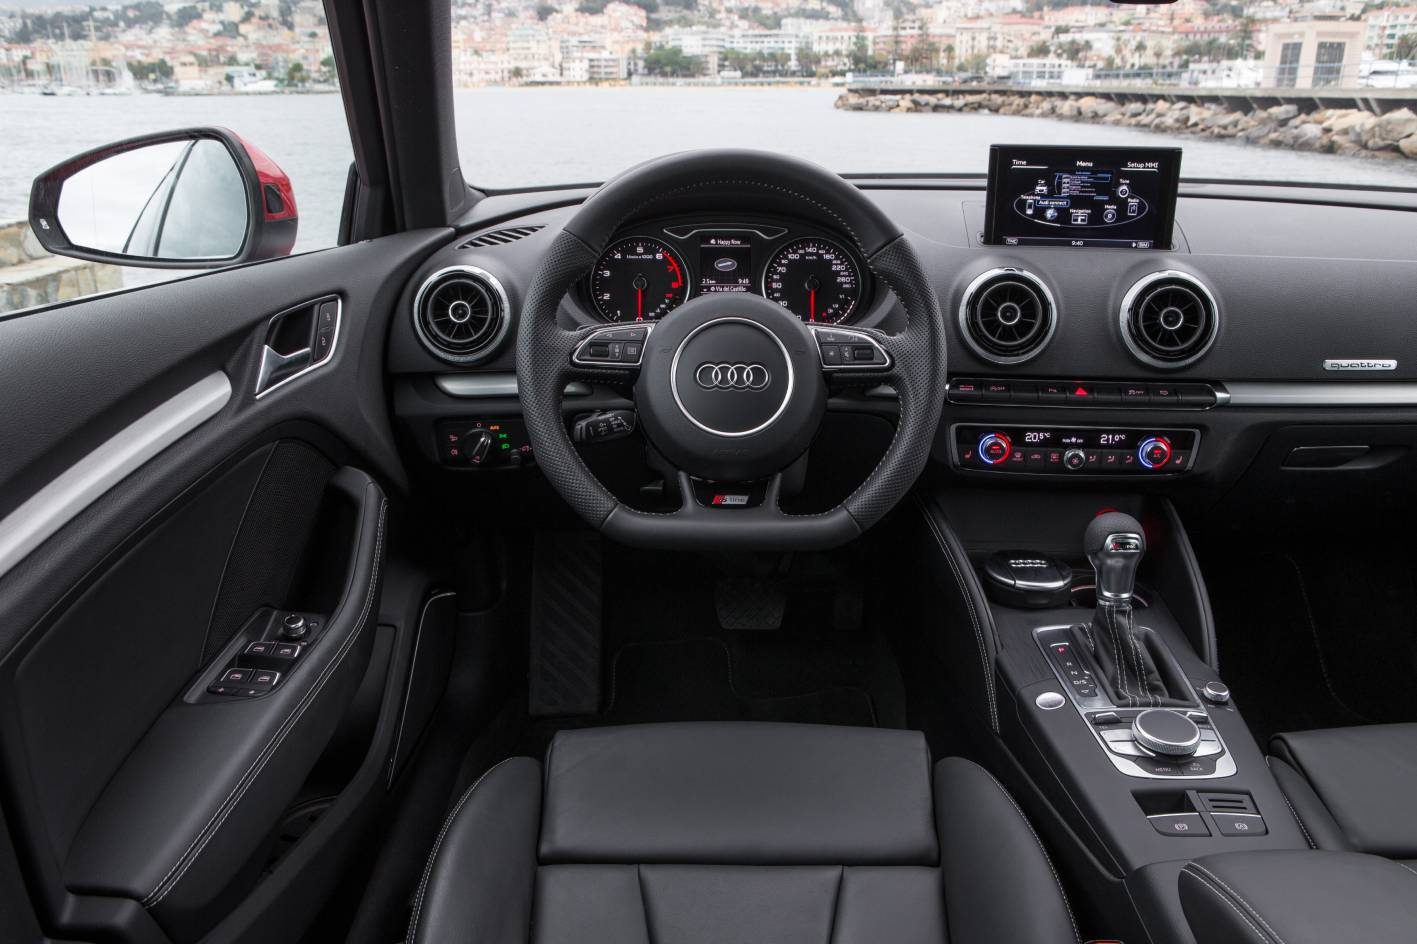 audi a3 sportback 1 4 tfsi photos 14 on better parts ltd. Black Bedroom Furniture Sets. Home Design Ideas